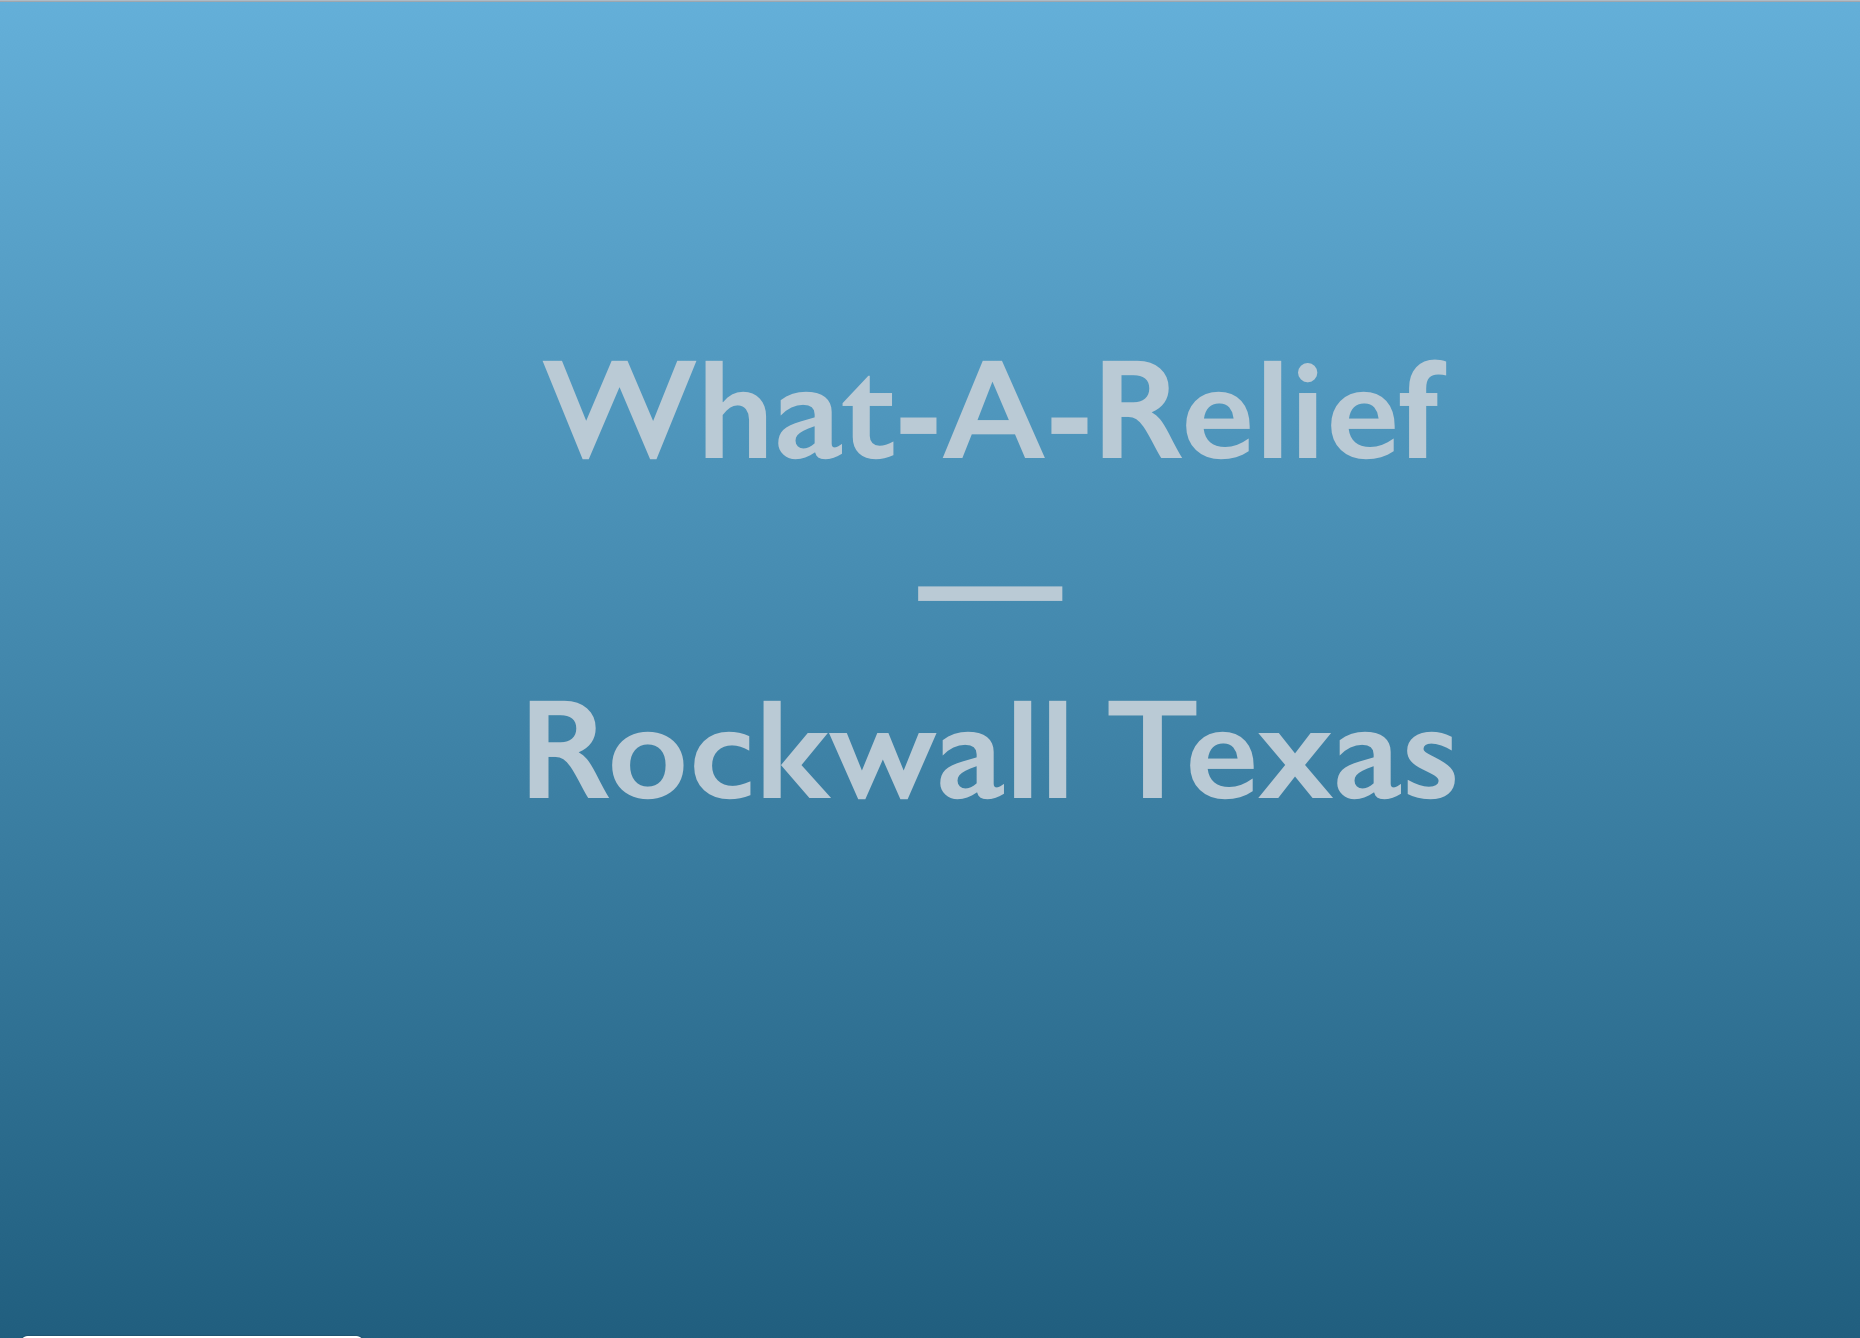 WAR Rockwall